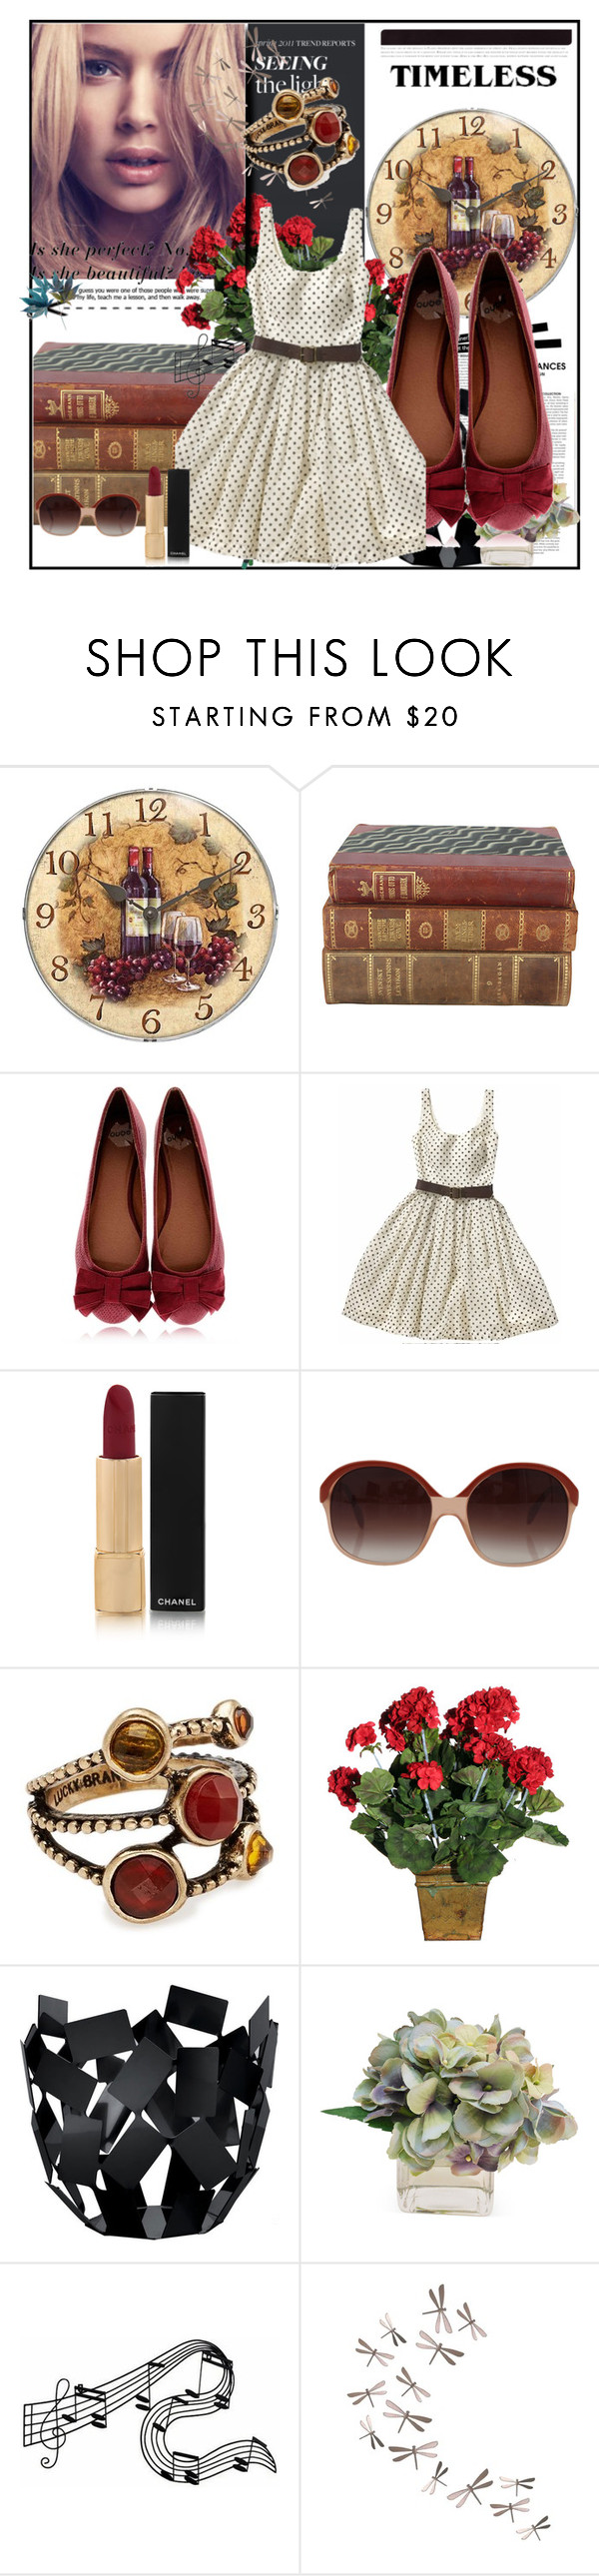 """""""Little pretty lady"""" by wild-1child ❤ liked on Polyvore featuring DuÅ¡an, Infinity Instruments, Qube, Corey Lynn Calter, Chanel, Oliver Peoples, Lucky Brand, Alessi, The French Bee and Umbra"""